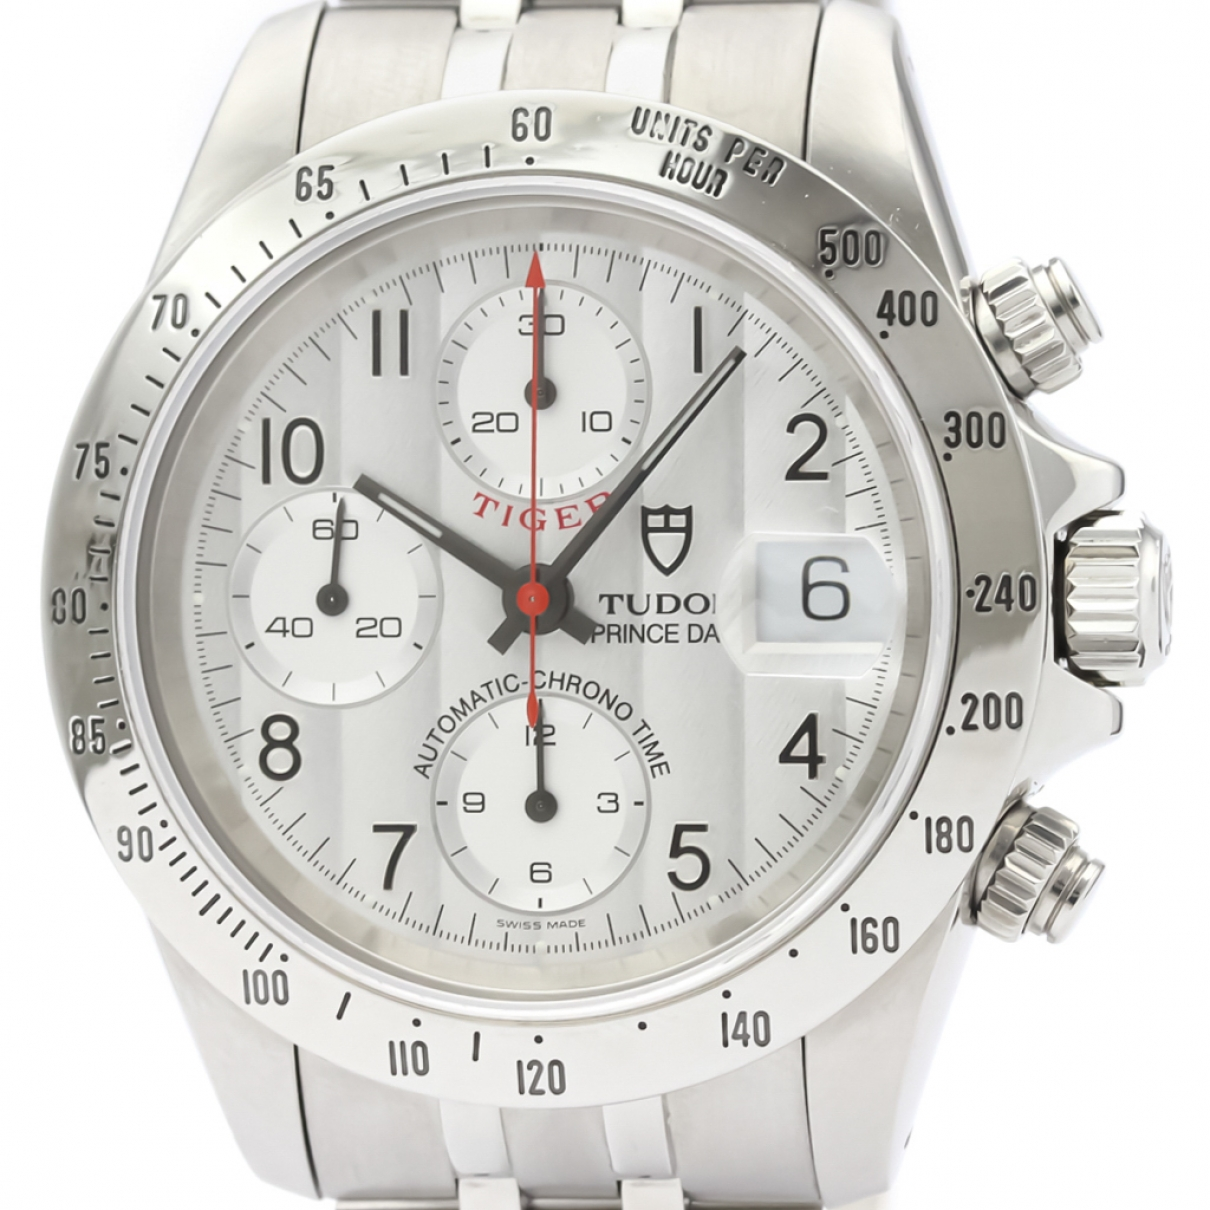 Tudor \N Silver Steel watch for Men \N